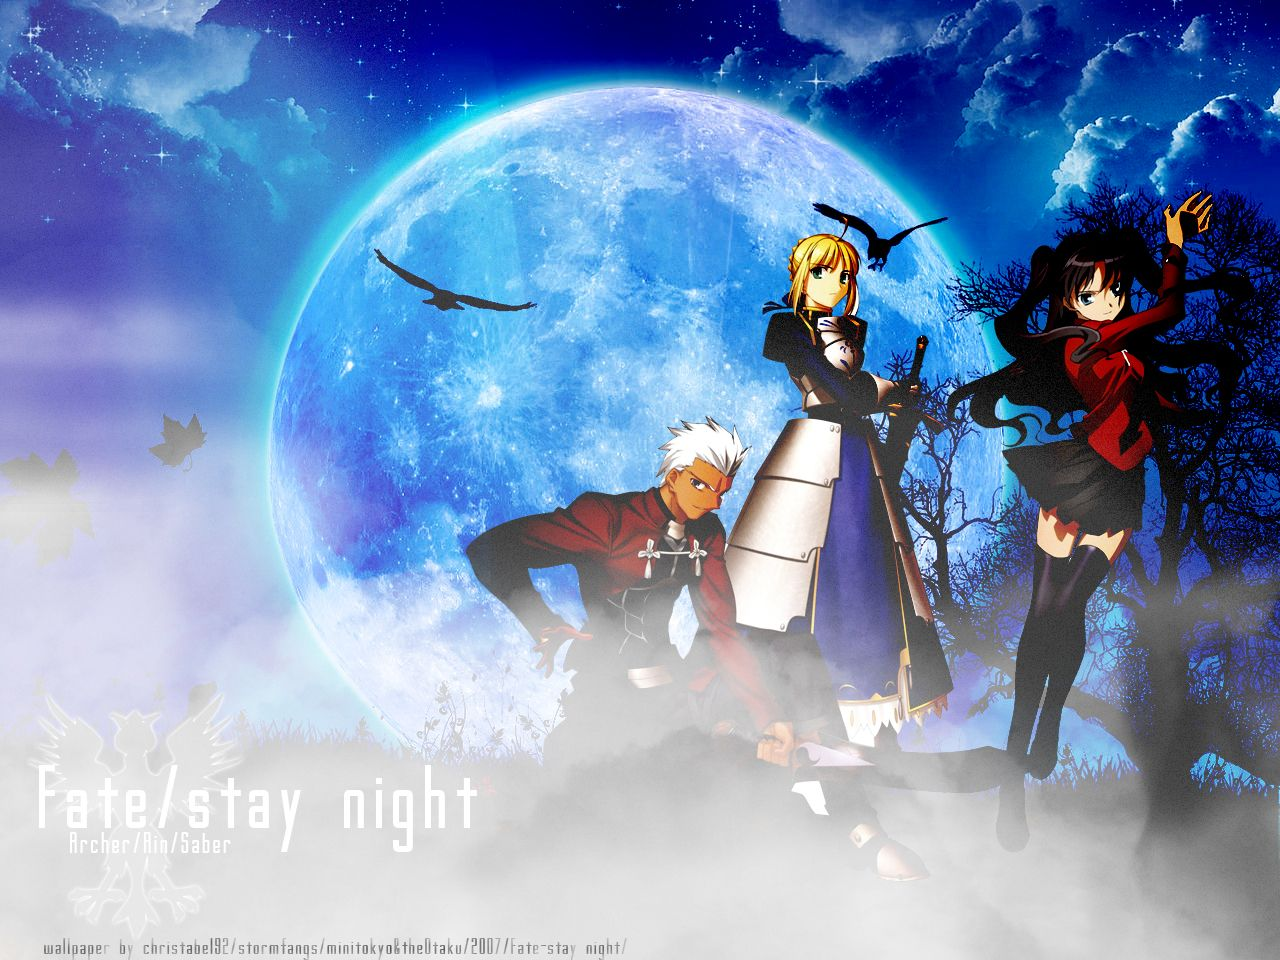 Minitokyo_Fate-Stay_Night_Wallpapers_324451.jpg